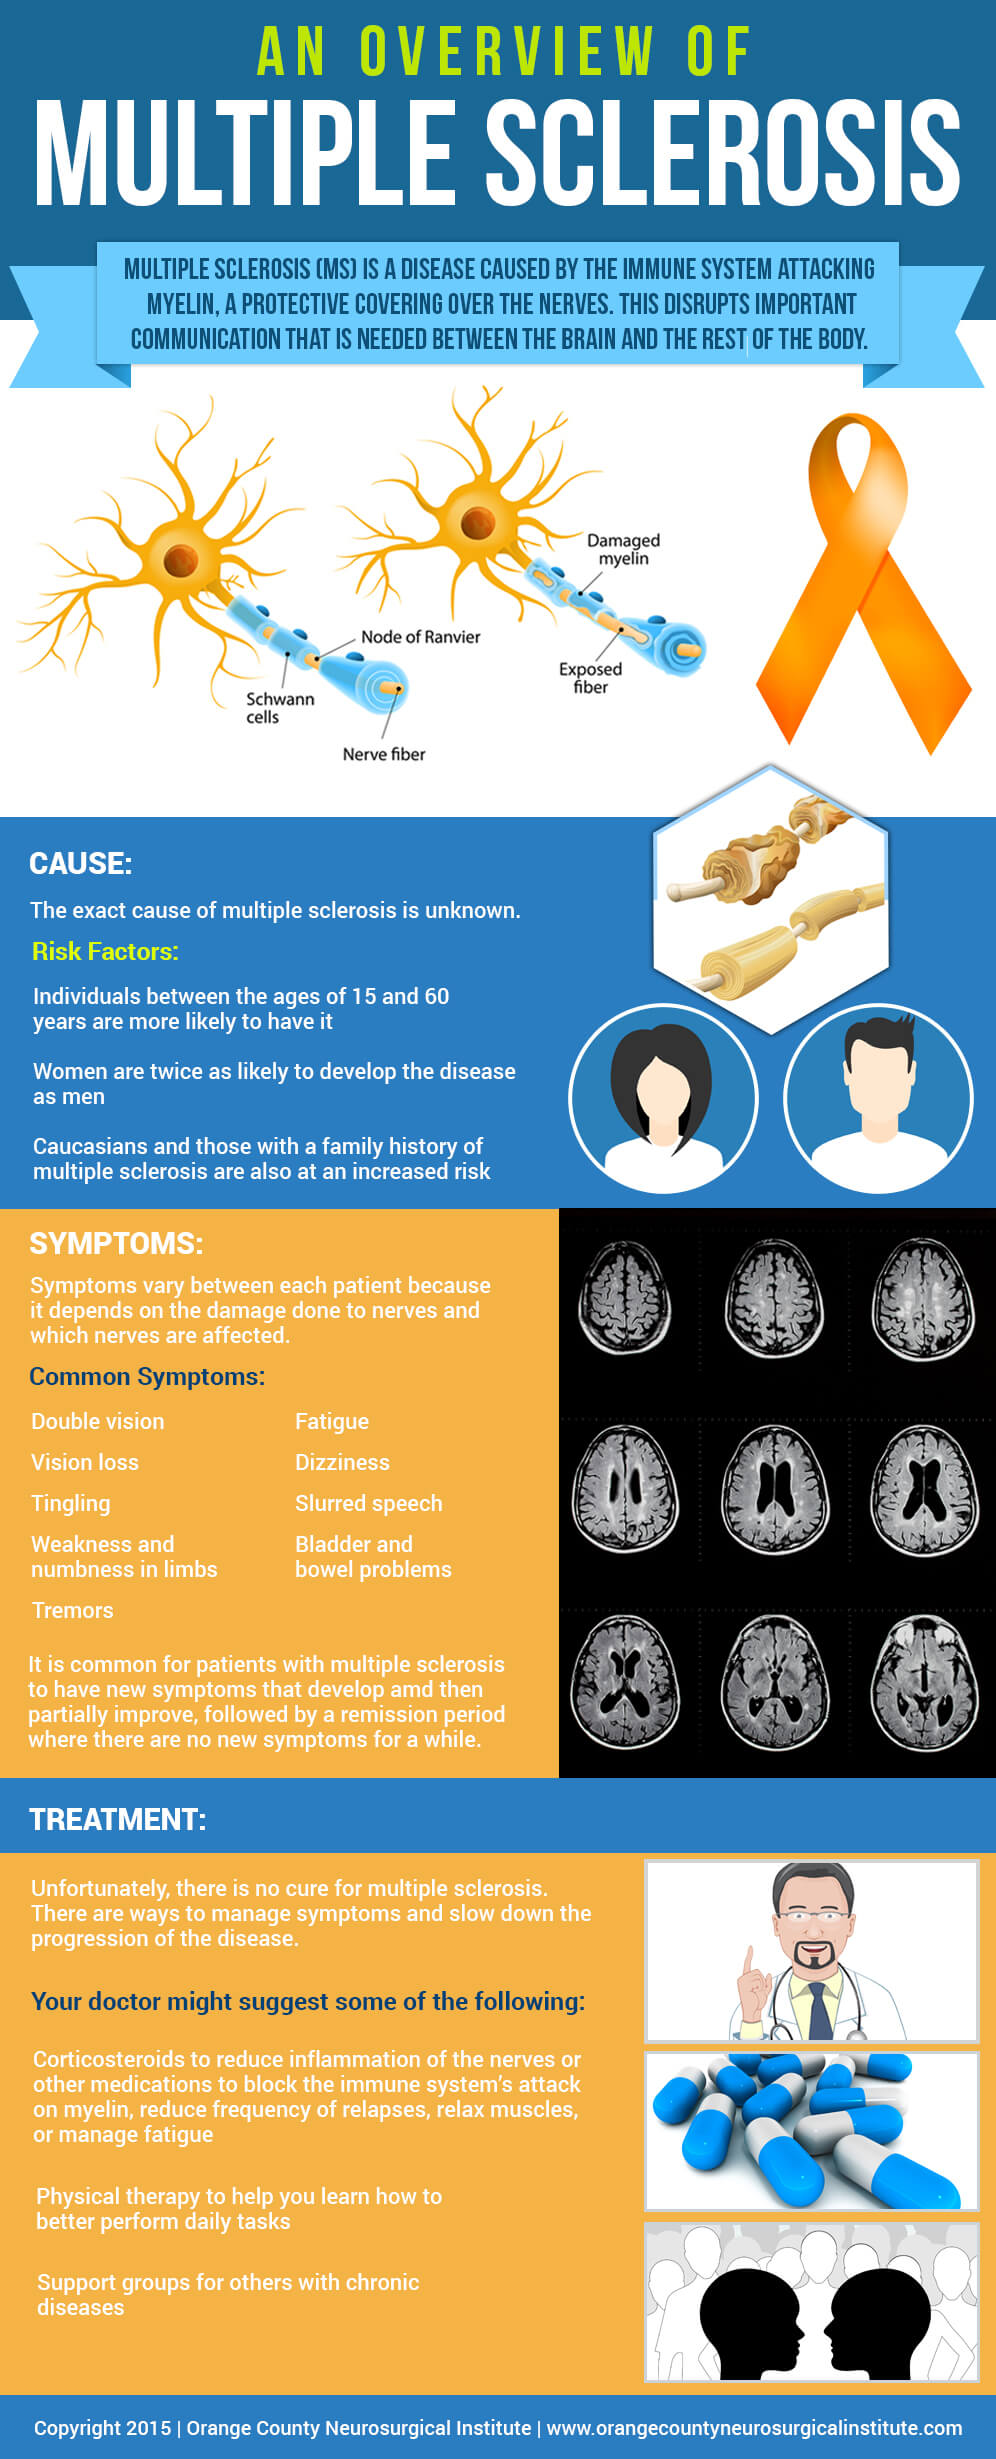 An-Overview-of-Multiple-Sclerosis-by-Orange-County-Neurosurgical-Institute-infographic-plaza